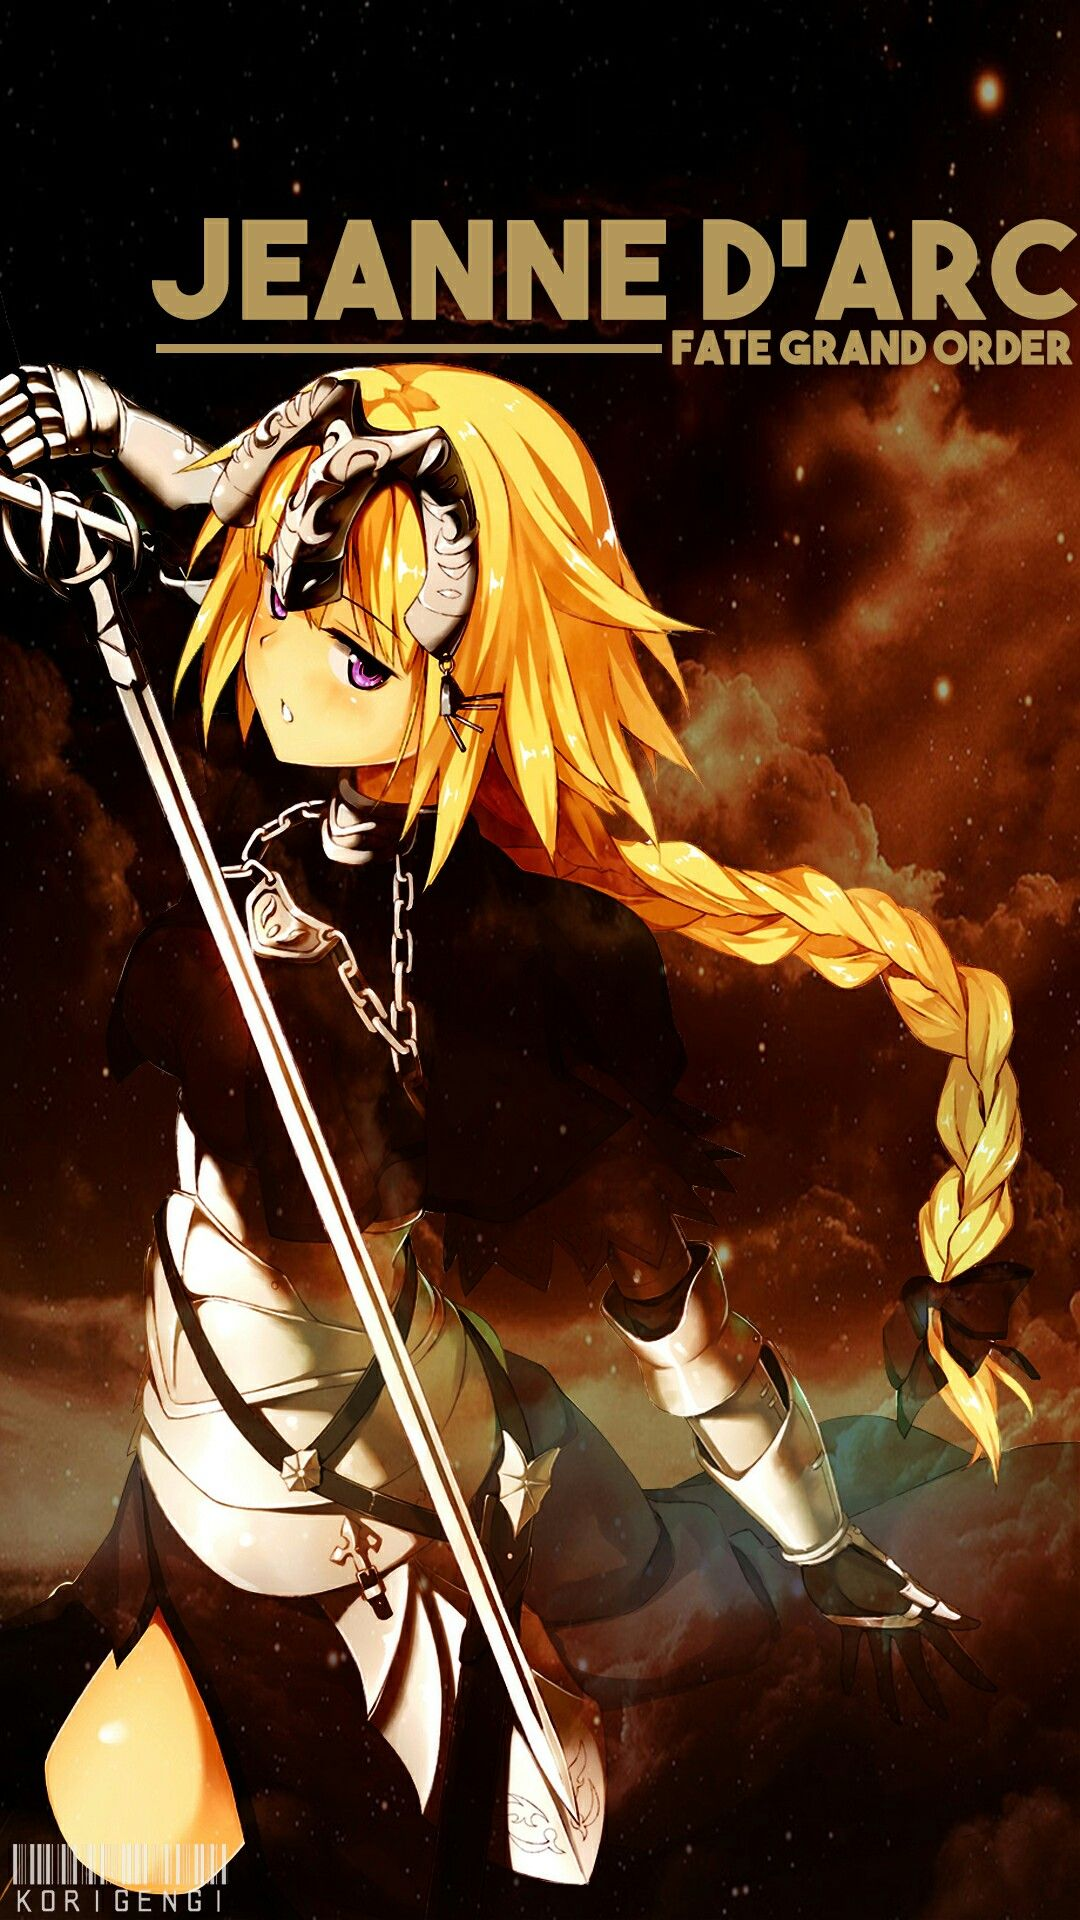 Pin by unknow on FATE SERIES Anime, Jeanne d'arc, Anime